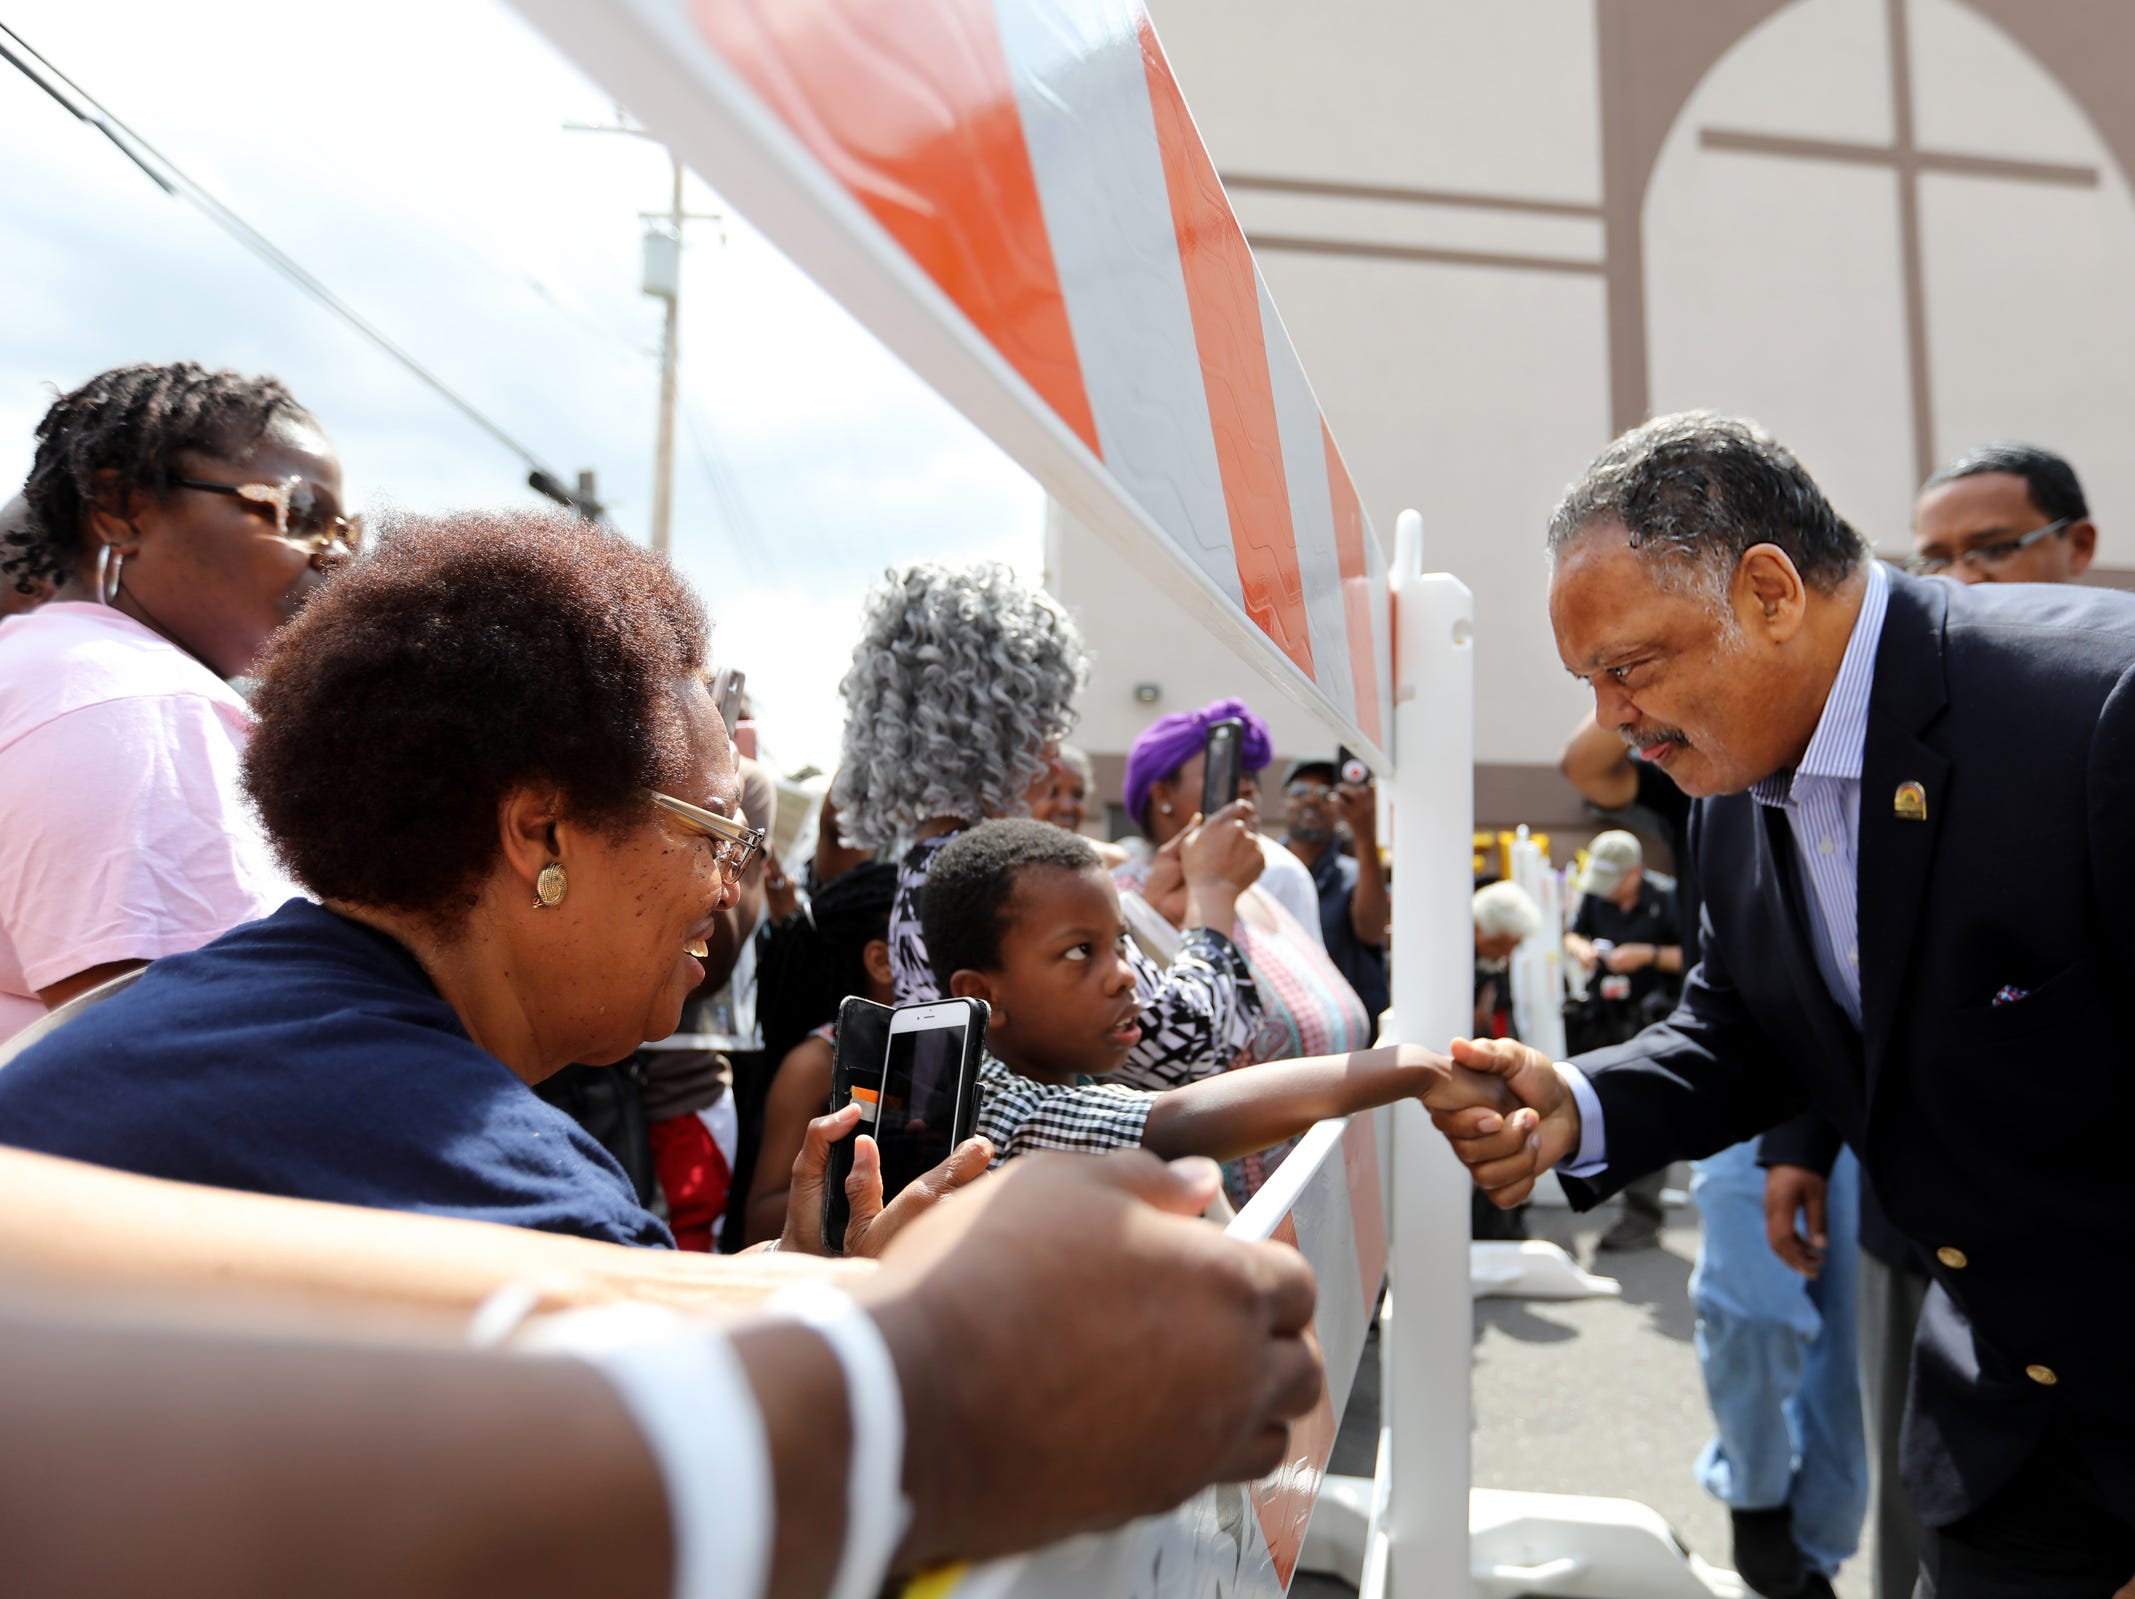 Rev. Jesse Jackson greets the crowd at a public viewing for Aretha Franklin at New Bethel Baptist Church in Detroit on Thursday, Aug. 30, 2018.